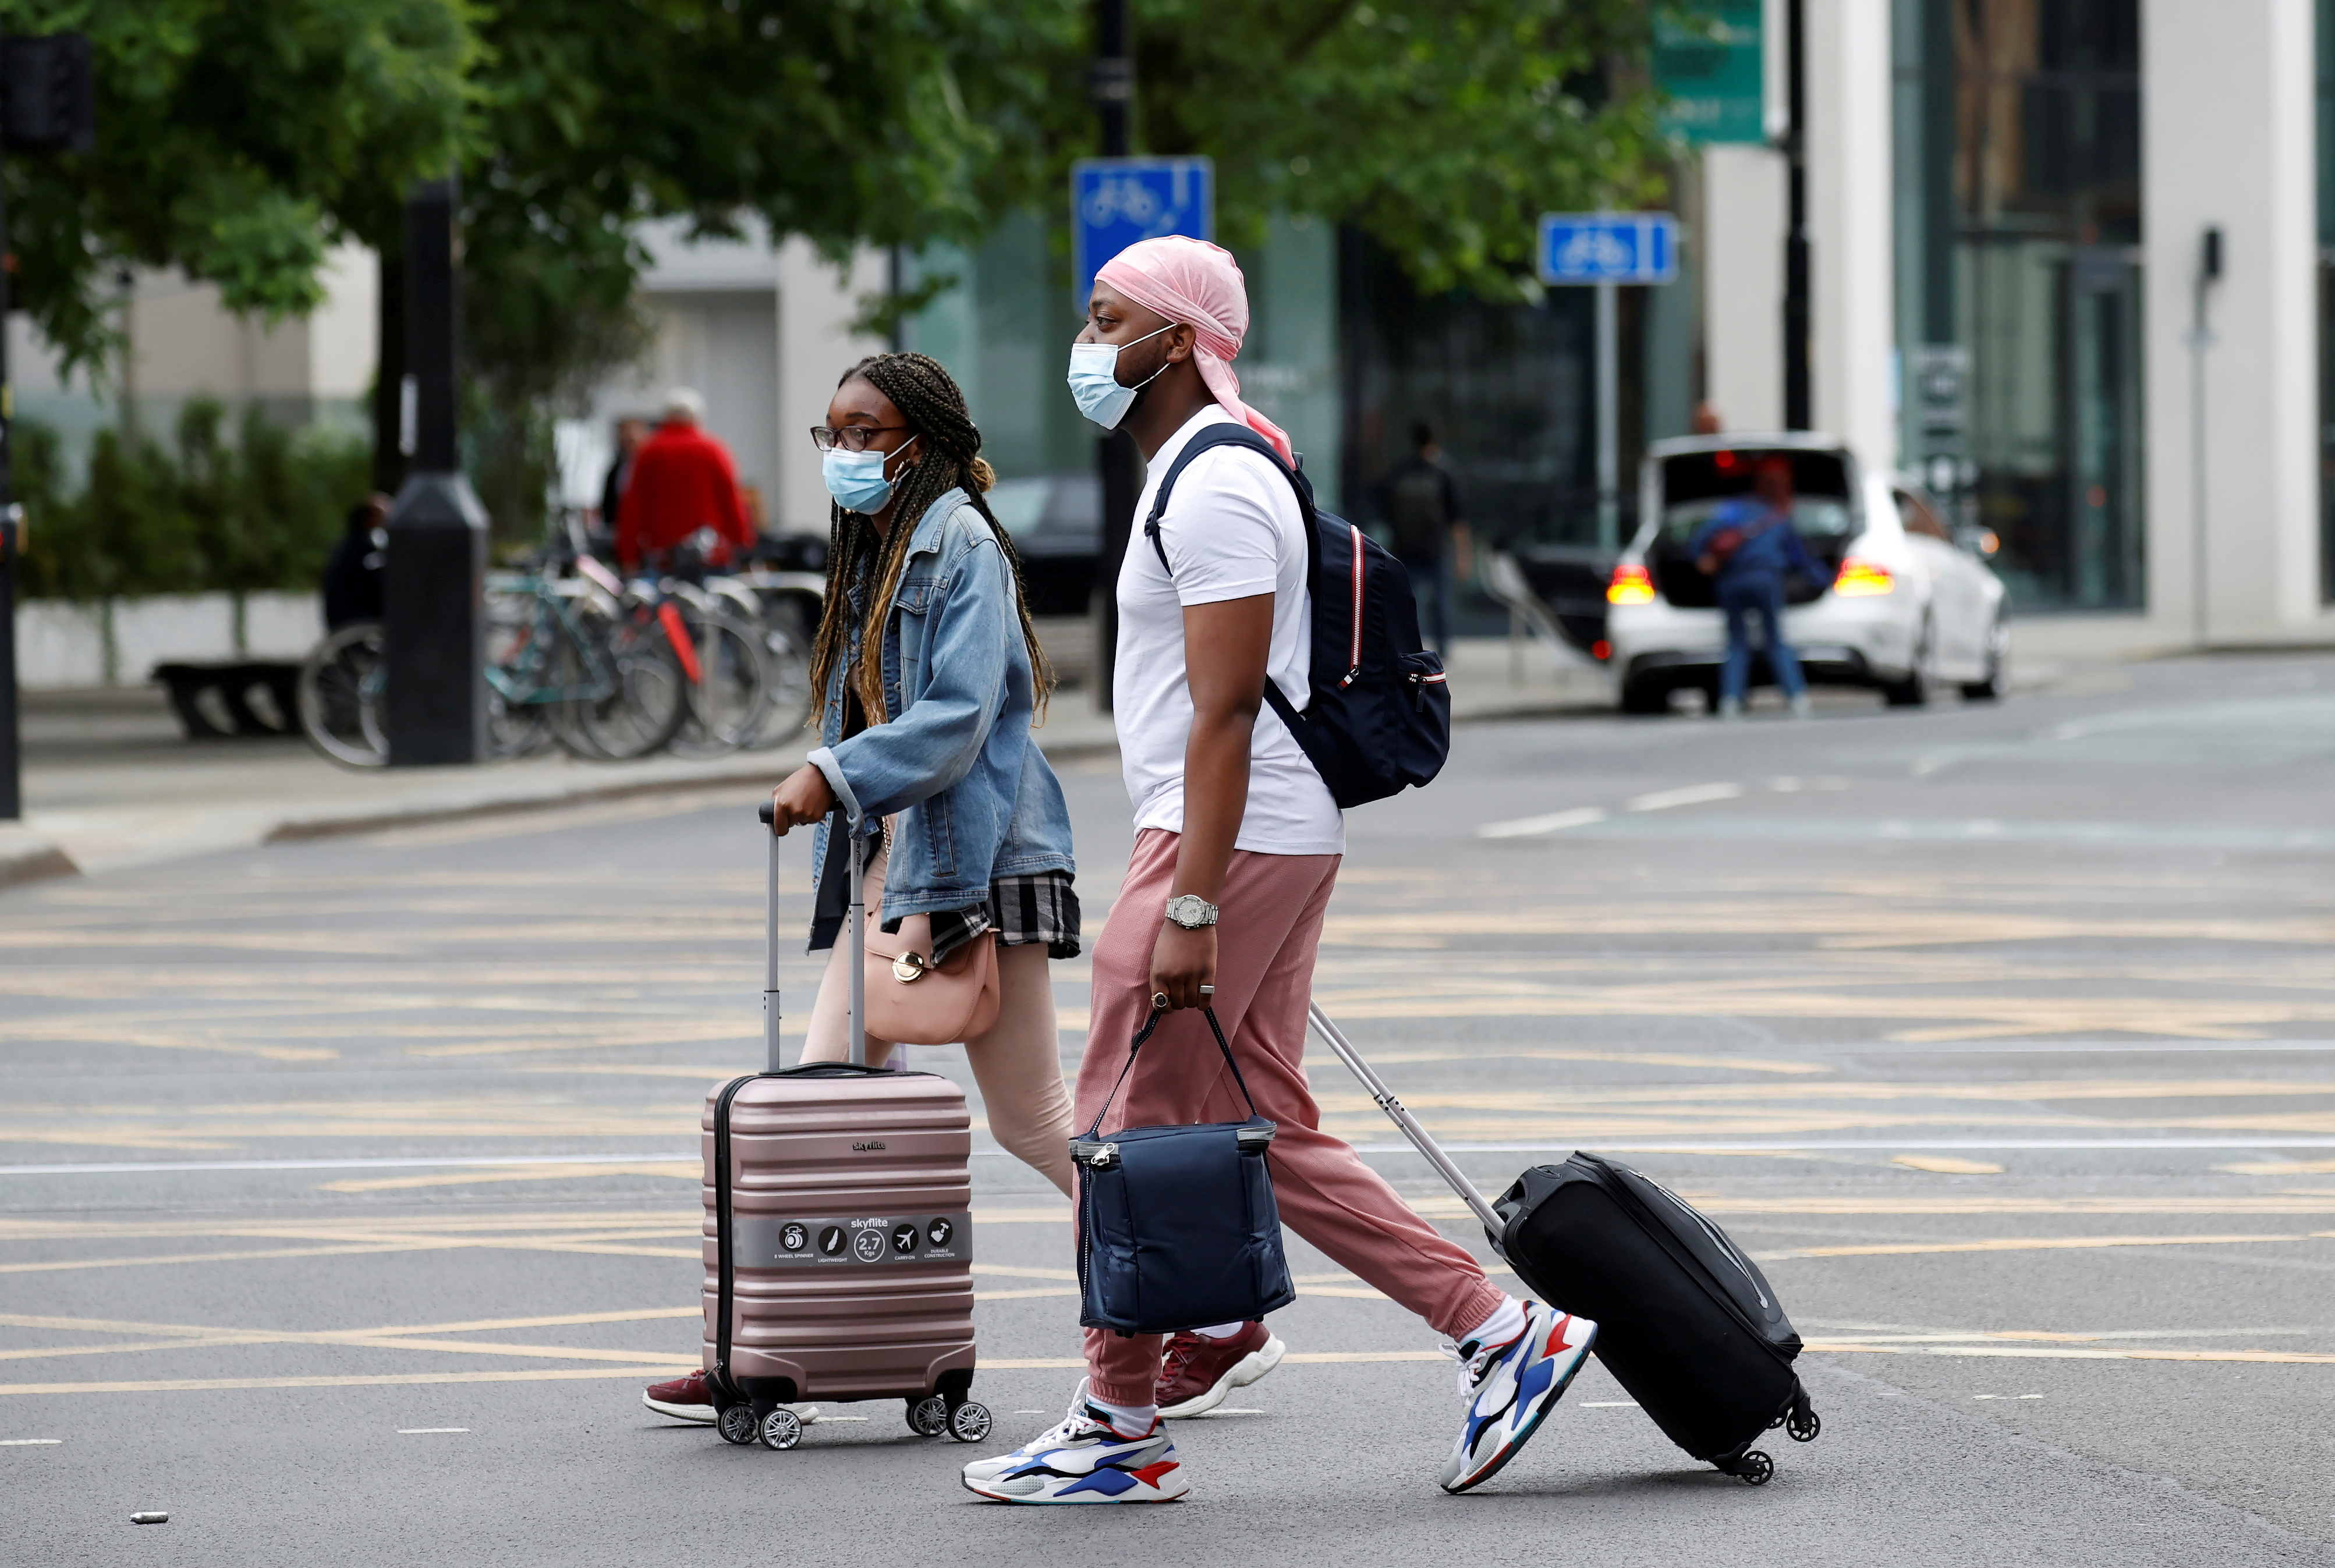 People wear protective masks as they walk with suitcases through the city centre, amid the outbreak of the coronavirus disease (COVID-19) in Manchester, Britain, June 21, 2021. REUTERS/Phil Noble